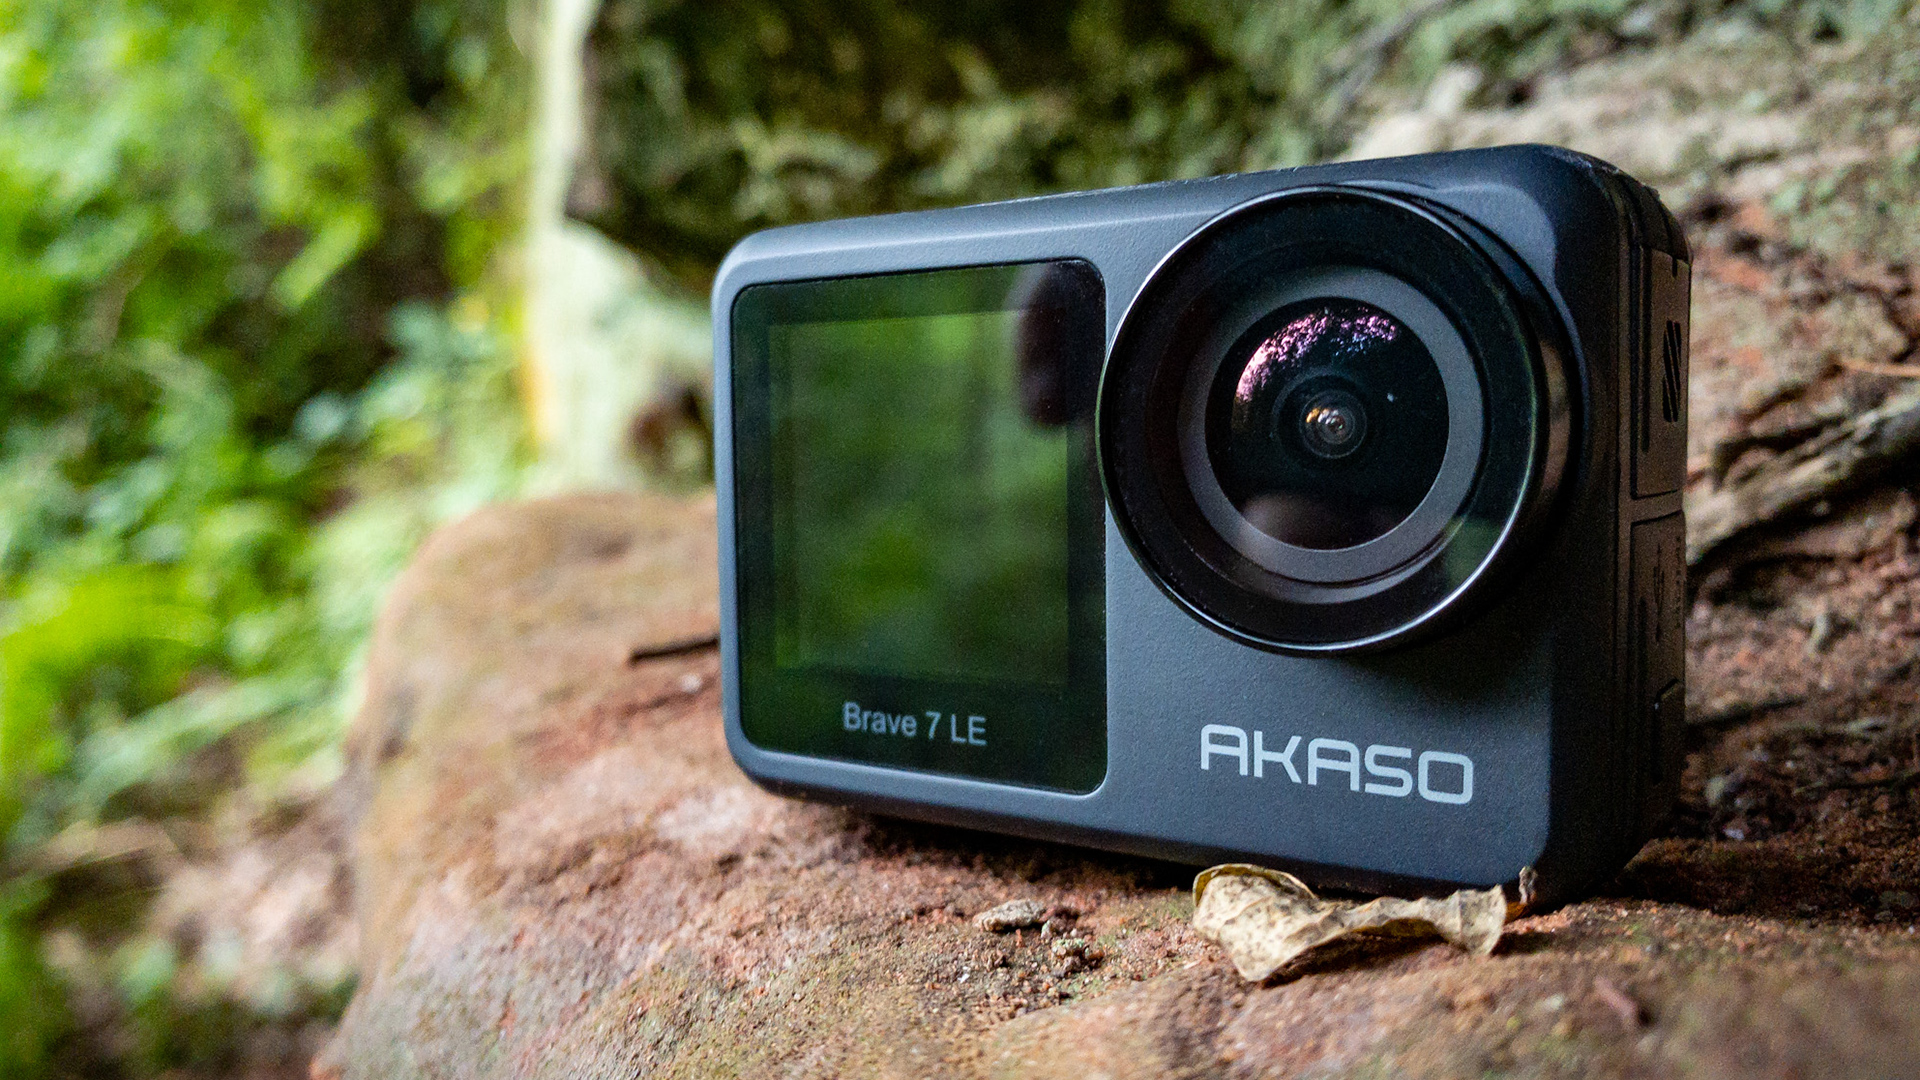 AKASO Brave 7 LE review